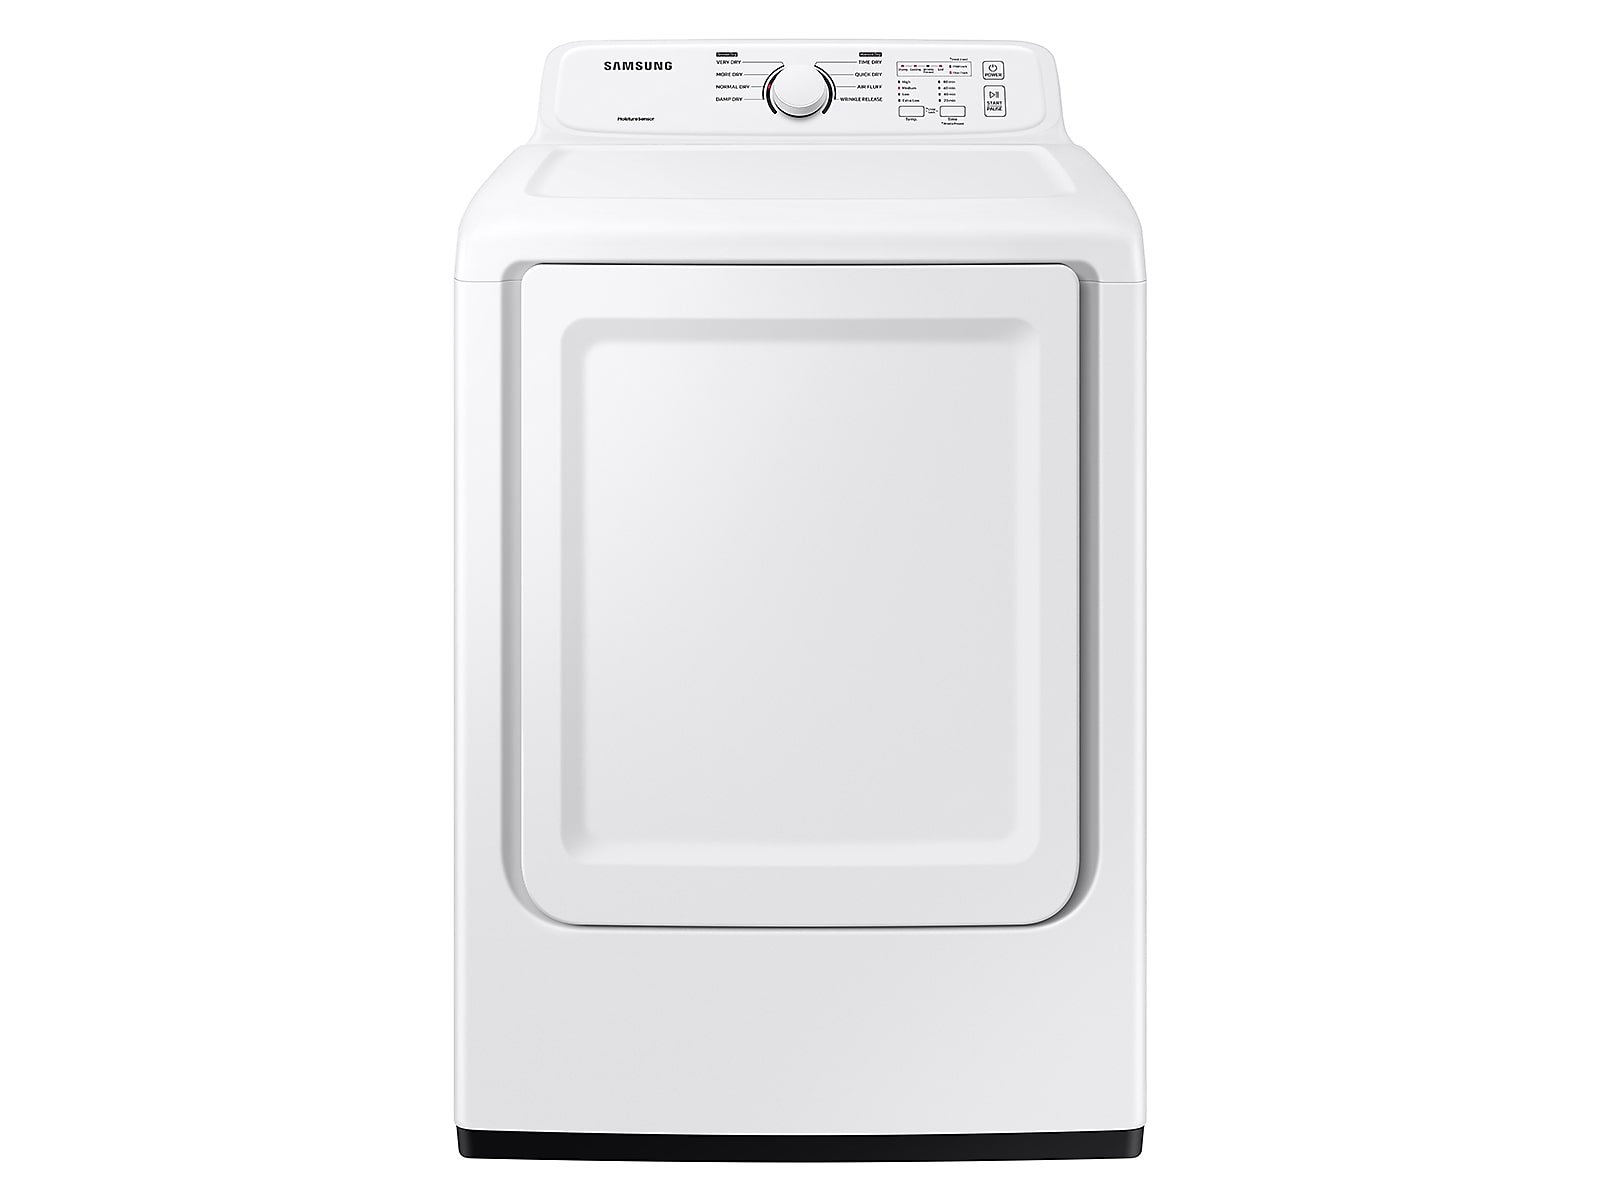 Samsung coupon: Samsung 7.2 cu. ft. Gas Dryer with Sensor Dry and 8 Drying Cycles in White(DVG41A3000W/A3)